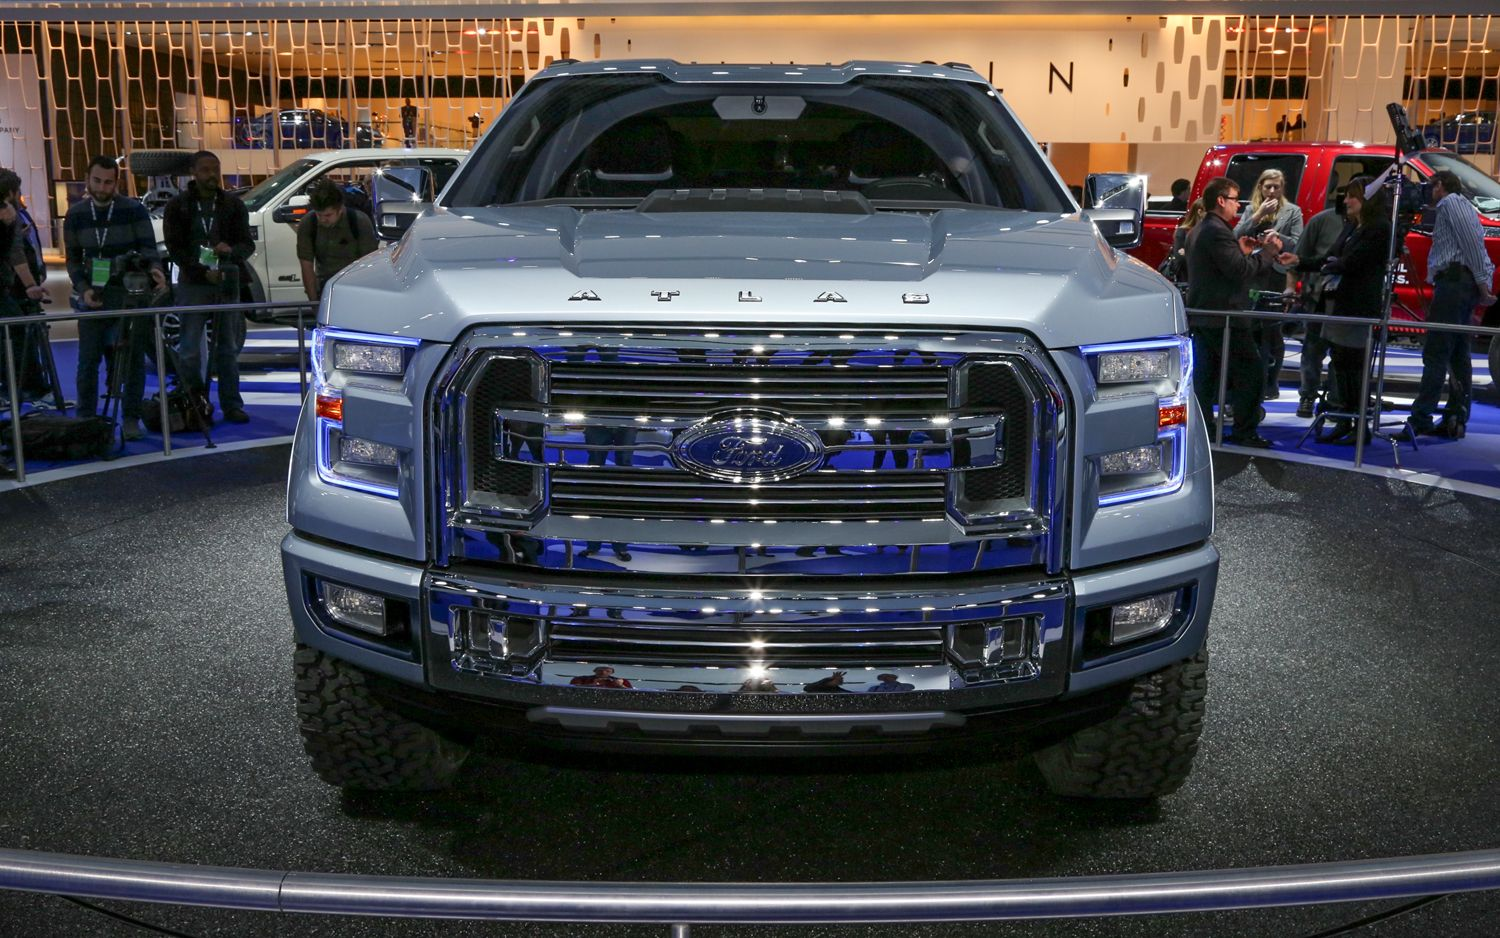 I love this big mean grill imagine that thing in black with